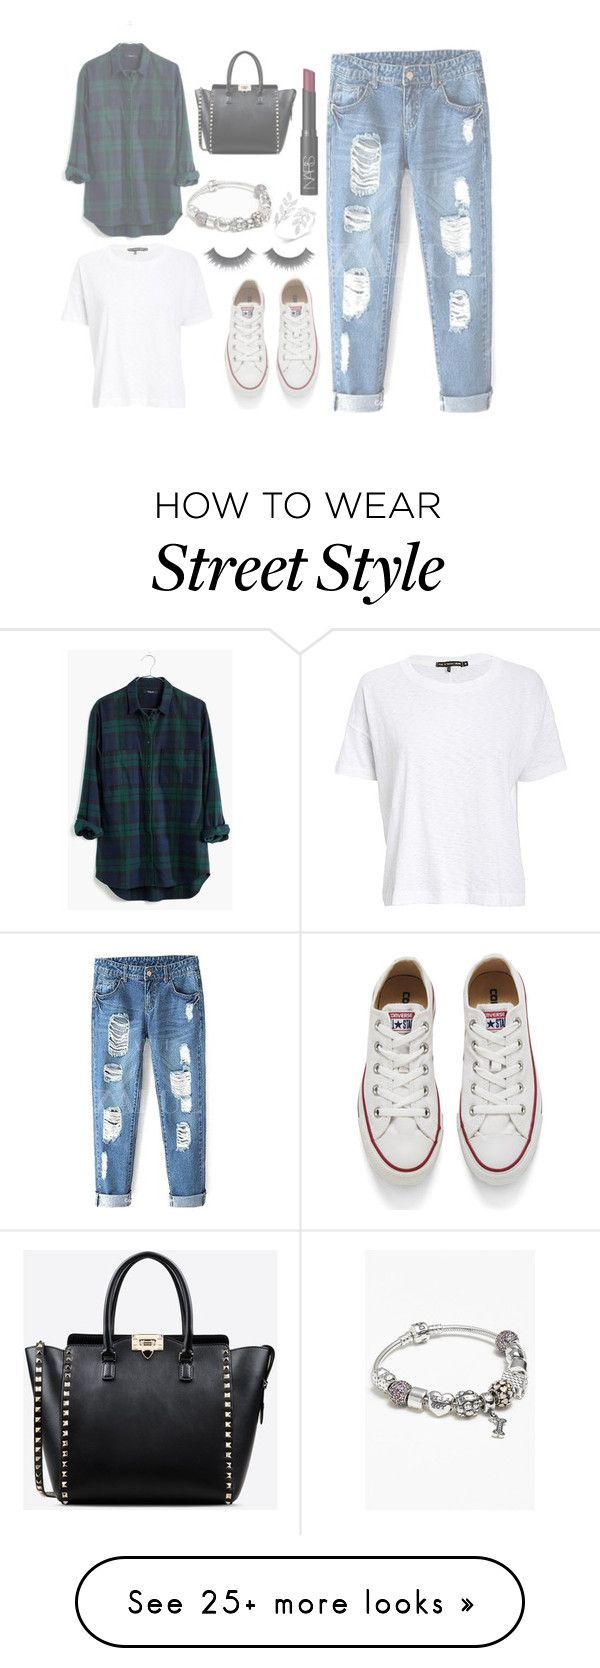 """Street style"" by danaceciliamonroe on Polyvore featuring Madewell, rag & bone/JEAN, Converse, NARS Cosmetics, Valentino, Pandora, women's clothing, women, female and woman"